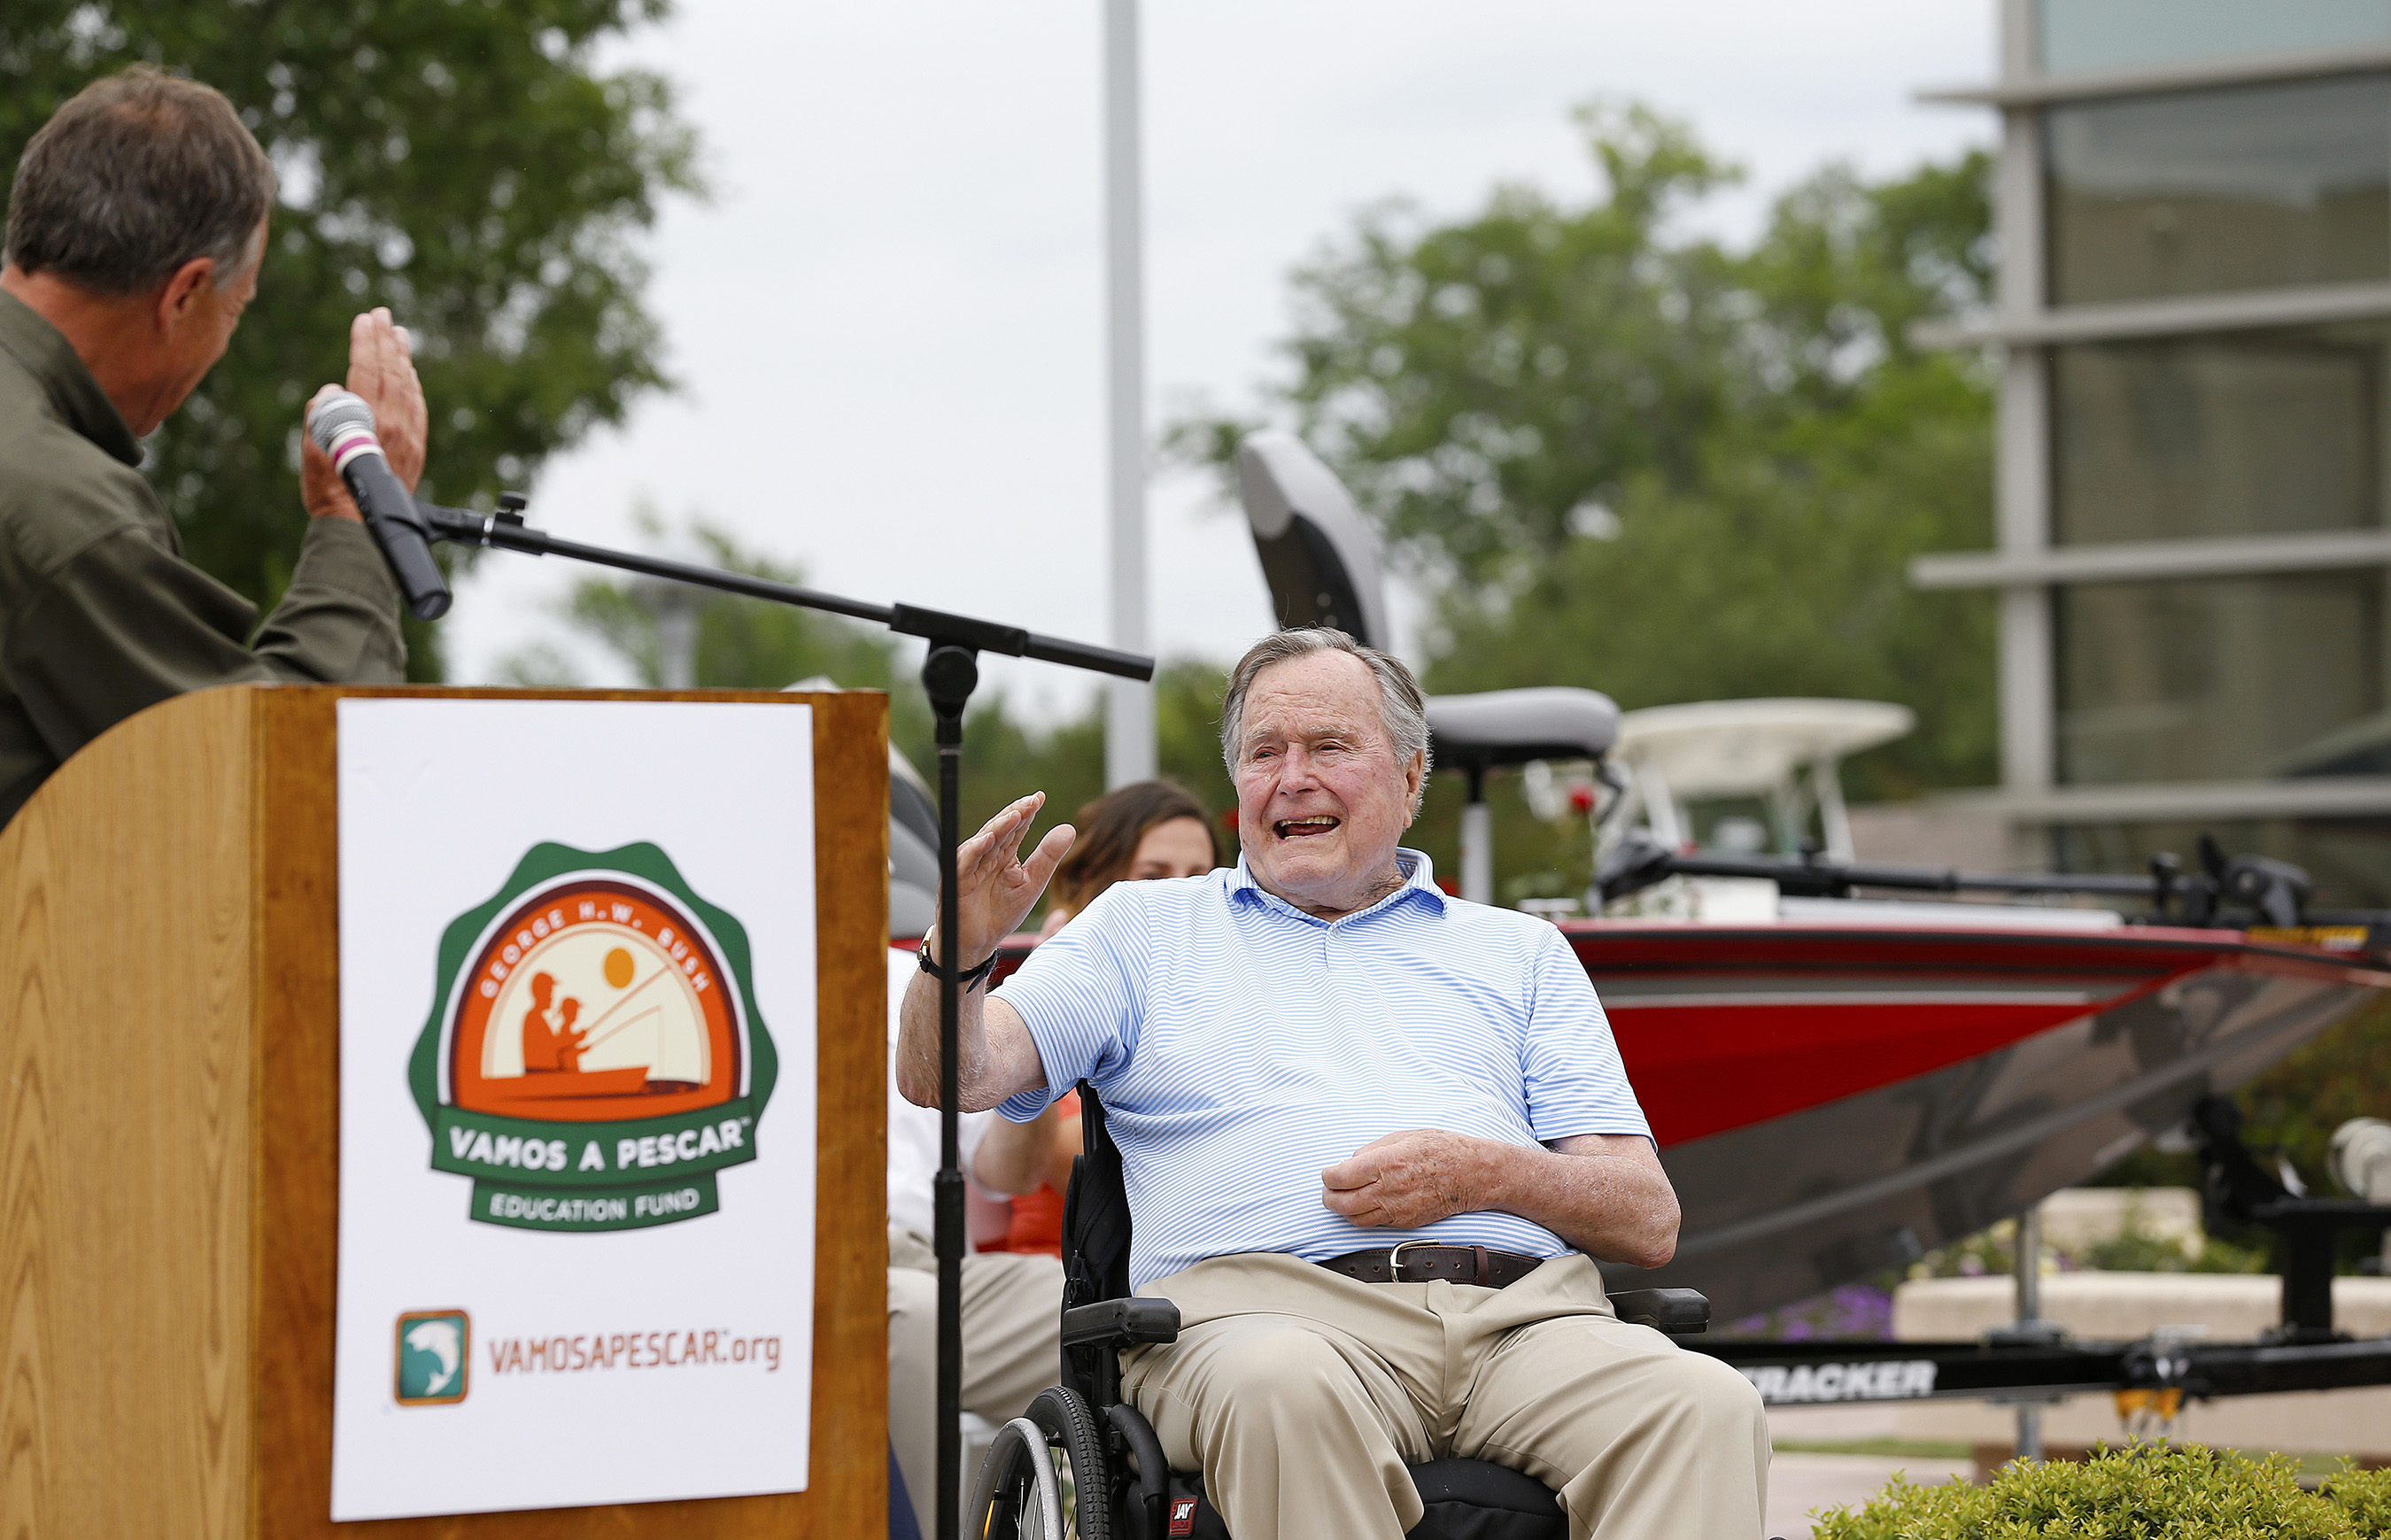 Johnny Morris, Founder and CEO of Bass Pro Shops, left, salutes President George H.W. Bush for his commitment to the fishing community during a Recreational Boating & Fishing Foundation (RBFF) event at the George Bush Presidential Library on Thursday, April 14, 2016, in College Station, Texas. RBFF is a nonprofit organization whose mission is to increase participation in recreational angling and boating, thereby protecting and restoring the nation's aquatic natural resources. (Aaron M. Sprecher/AP Images for RBFF)